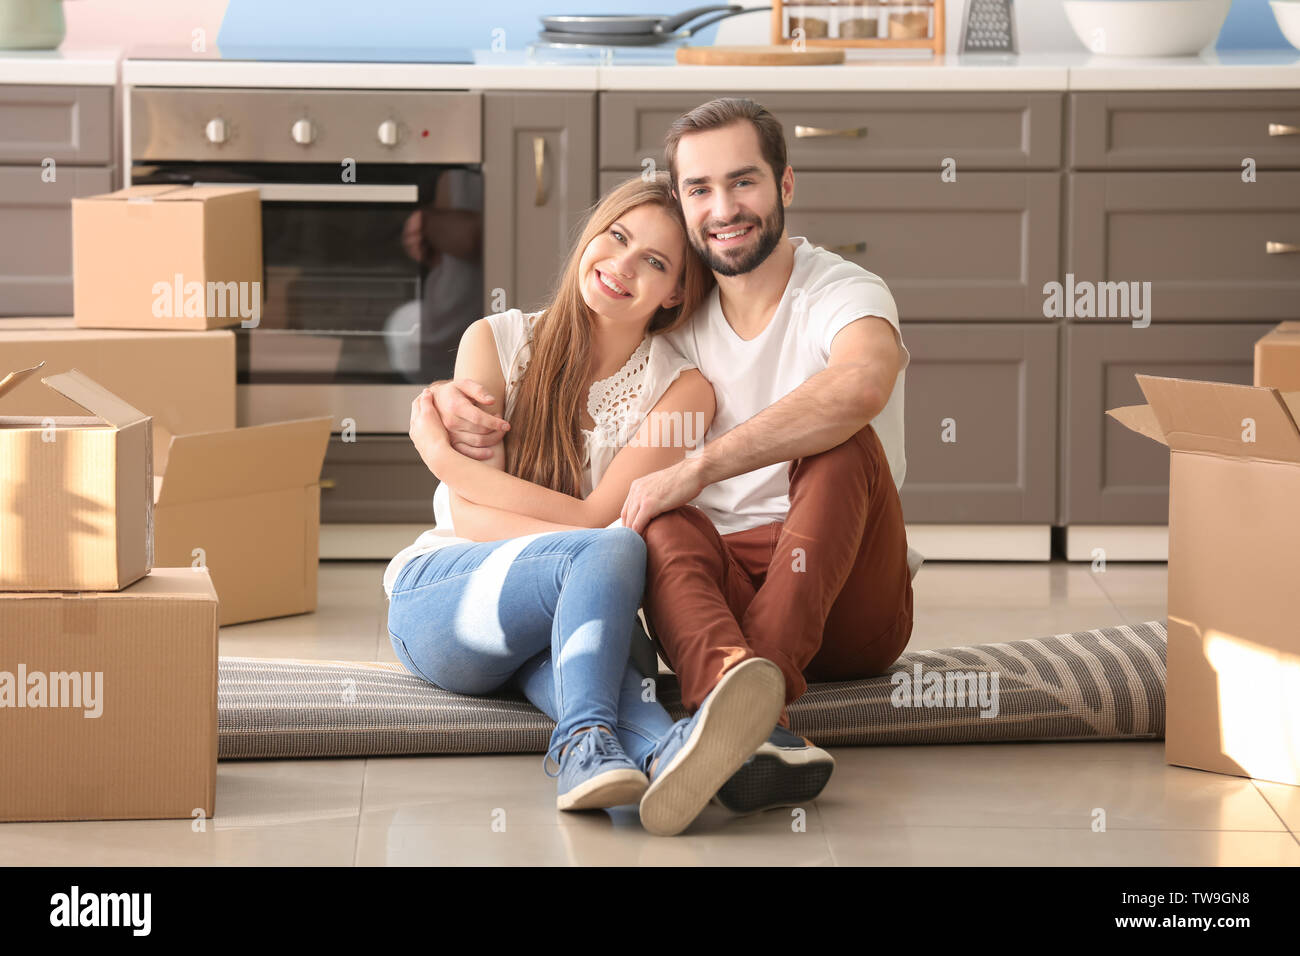 Young couple with moving boxes on floor in kitchen at new home - Stock Image